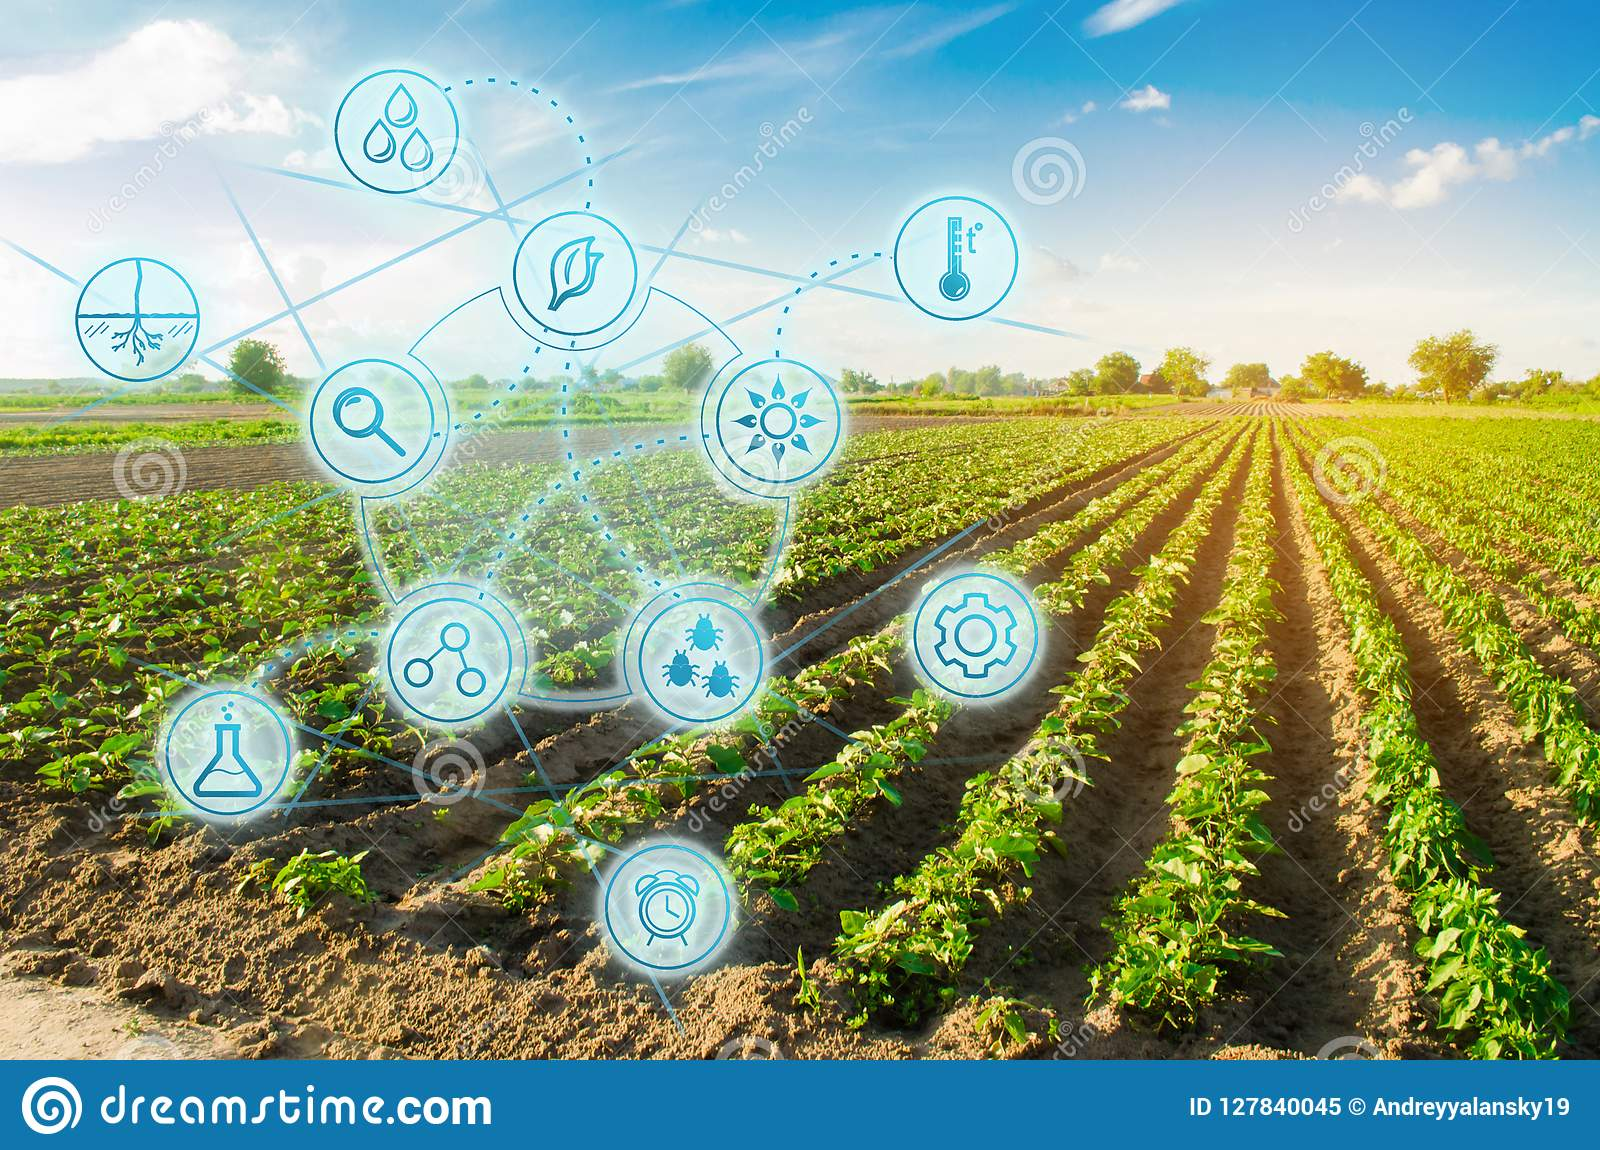 Farm field pepper. Innovation and modern technology. Quality control, increase crop yields. Monitoring the growth of plants